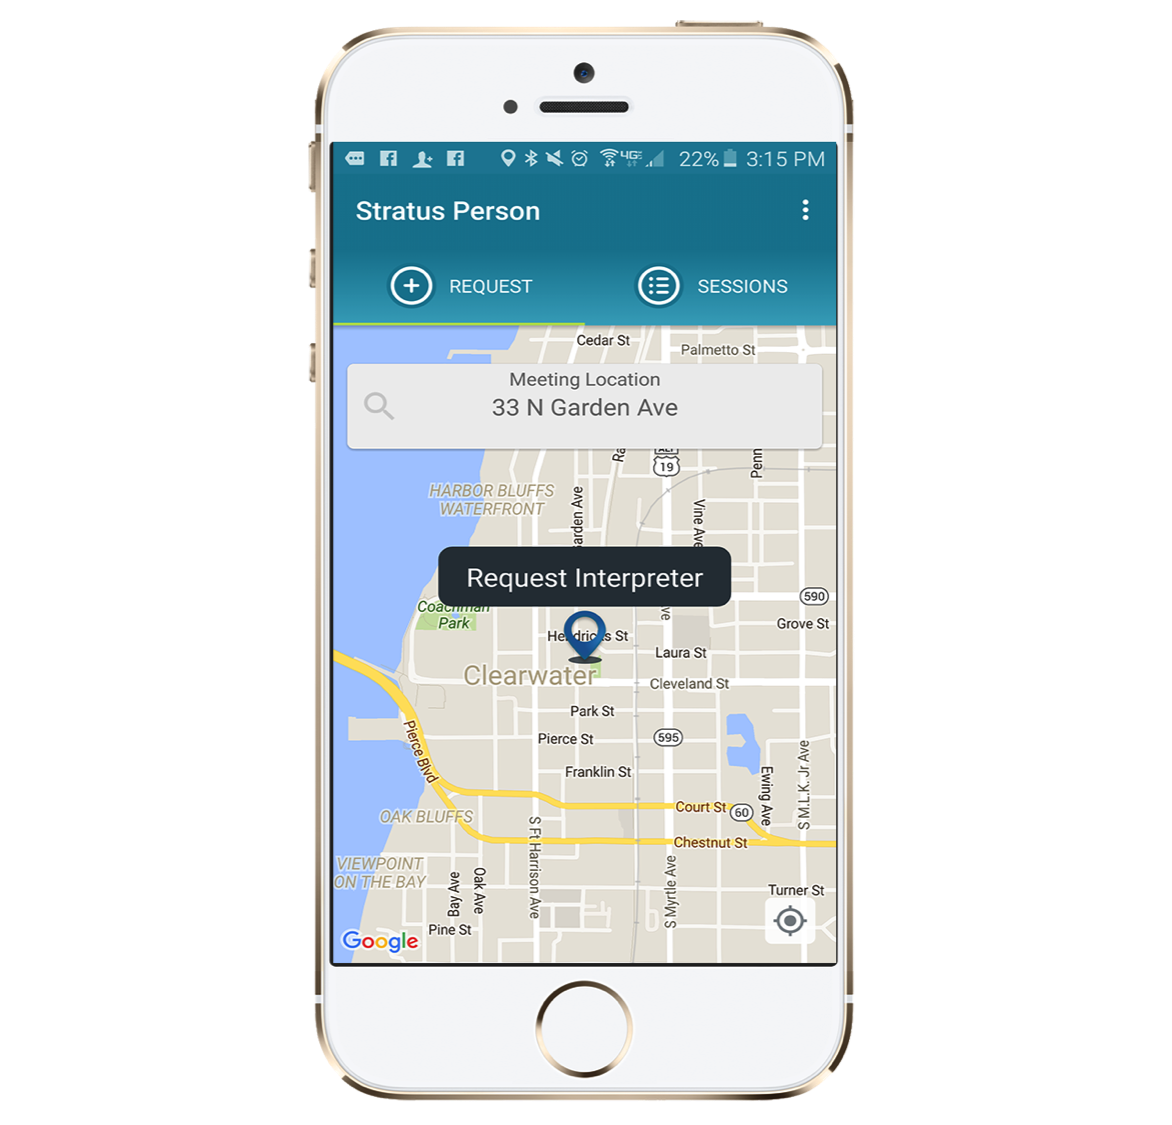 Stratus InPerson app works like Uber for interpreters, the company says